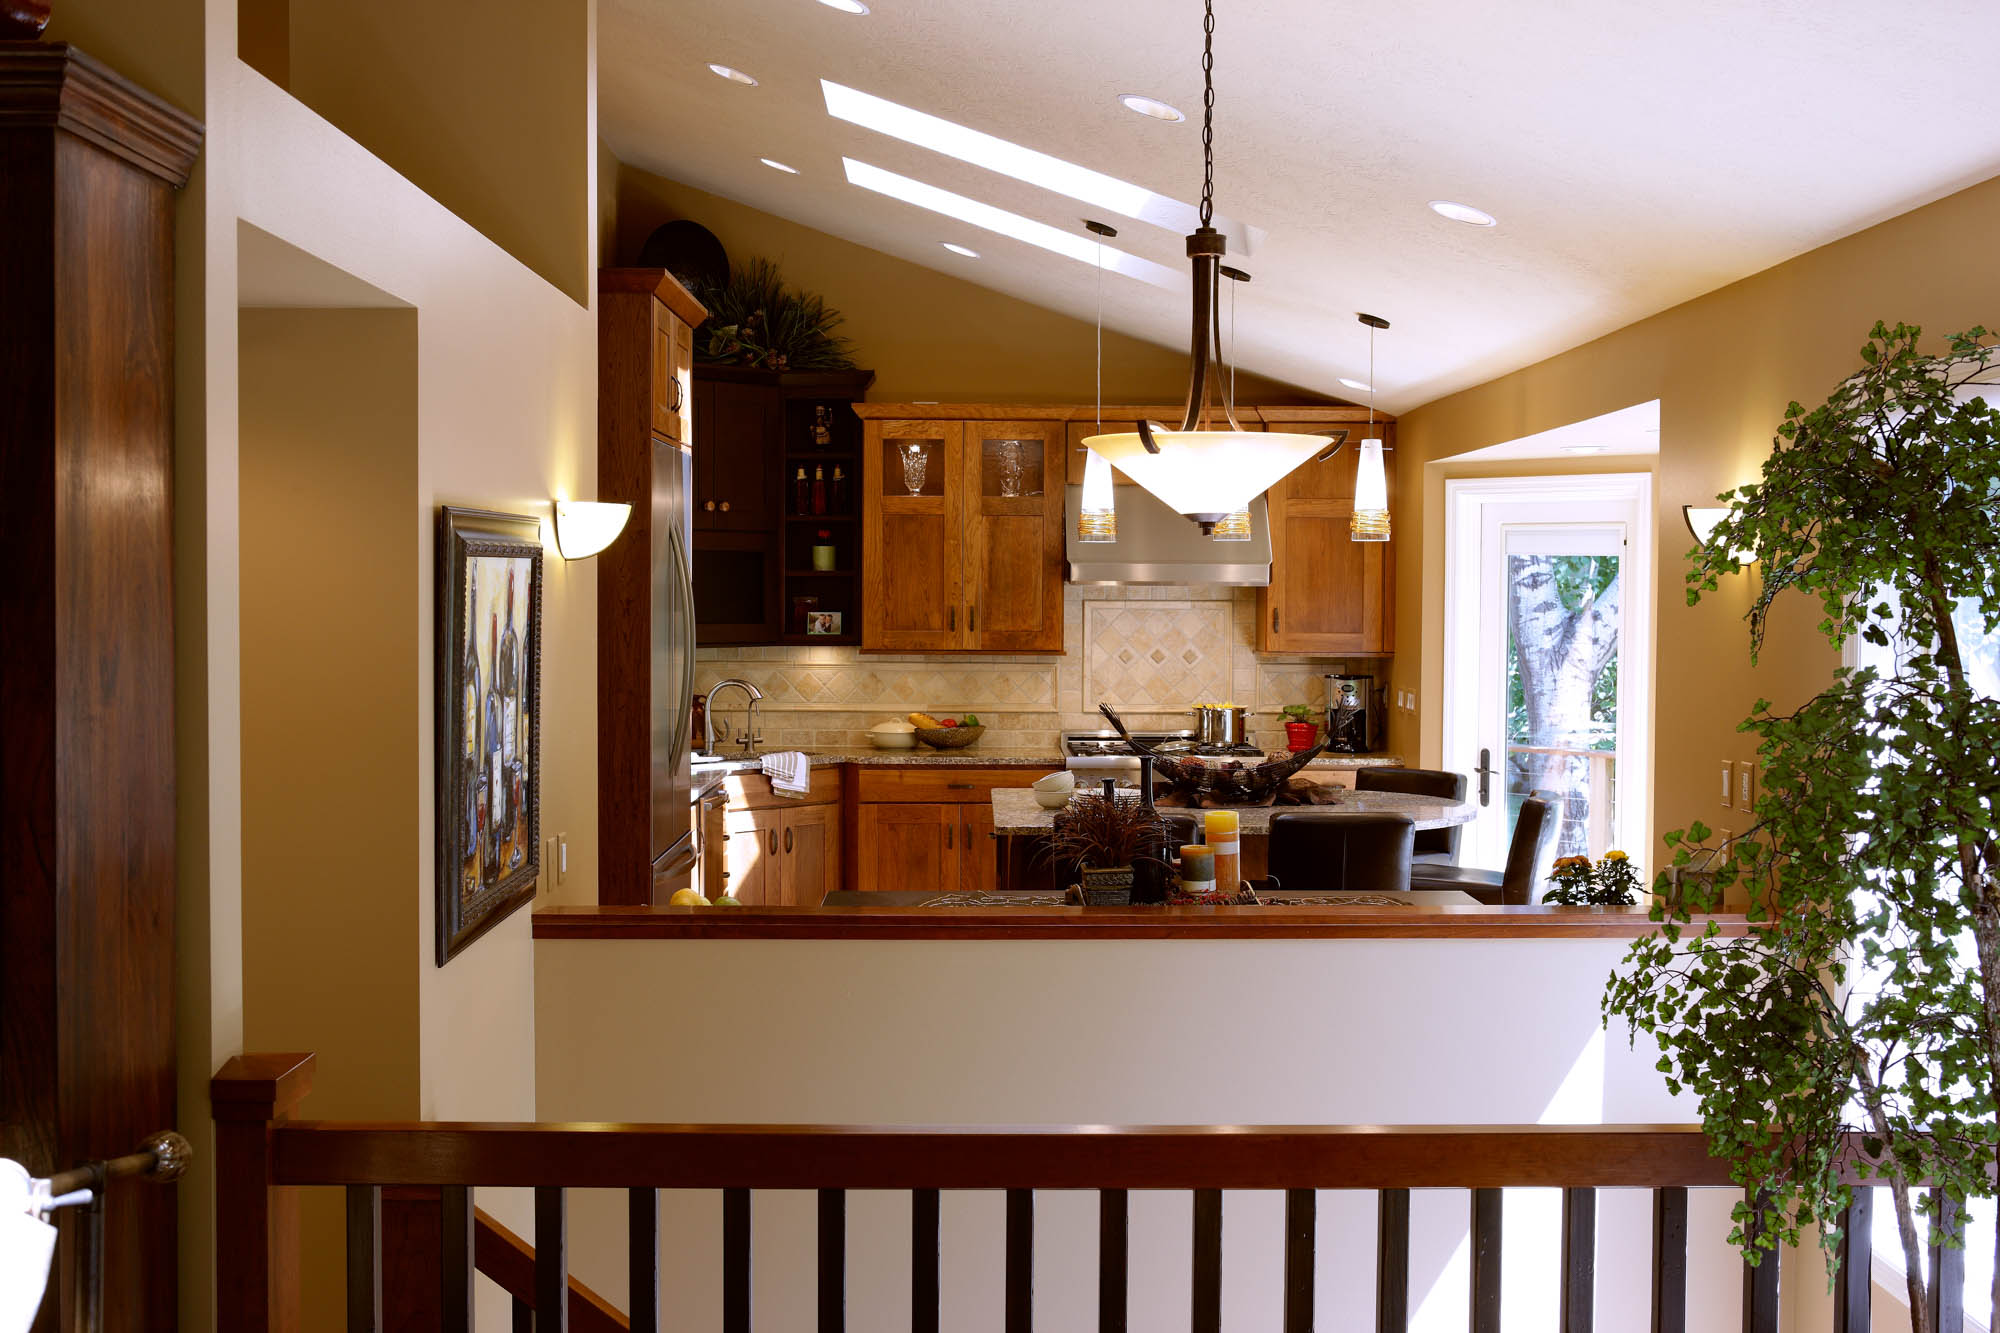 Stained kitchen cabinets in Truffle and Coffee by Showplace Cabinetry - view 2